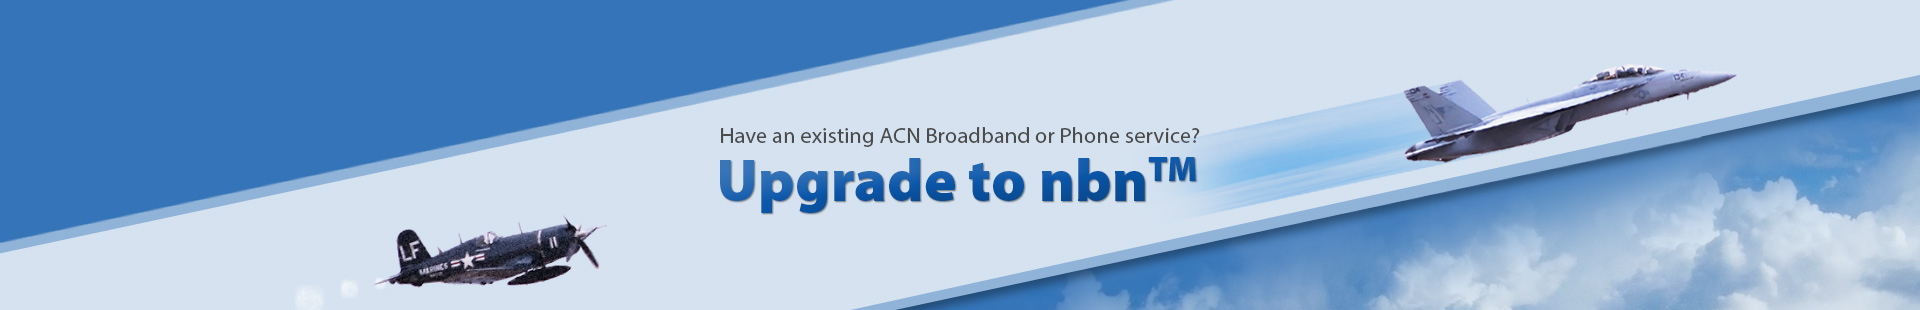 Upgrade-to-nbn-jets-1920x300-August-2017-v2